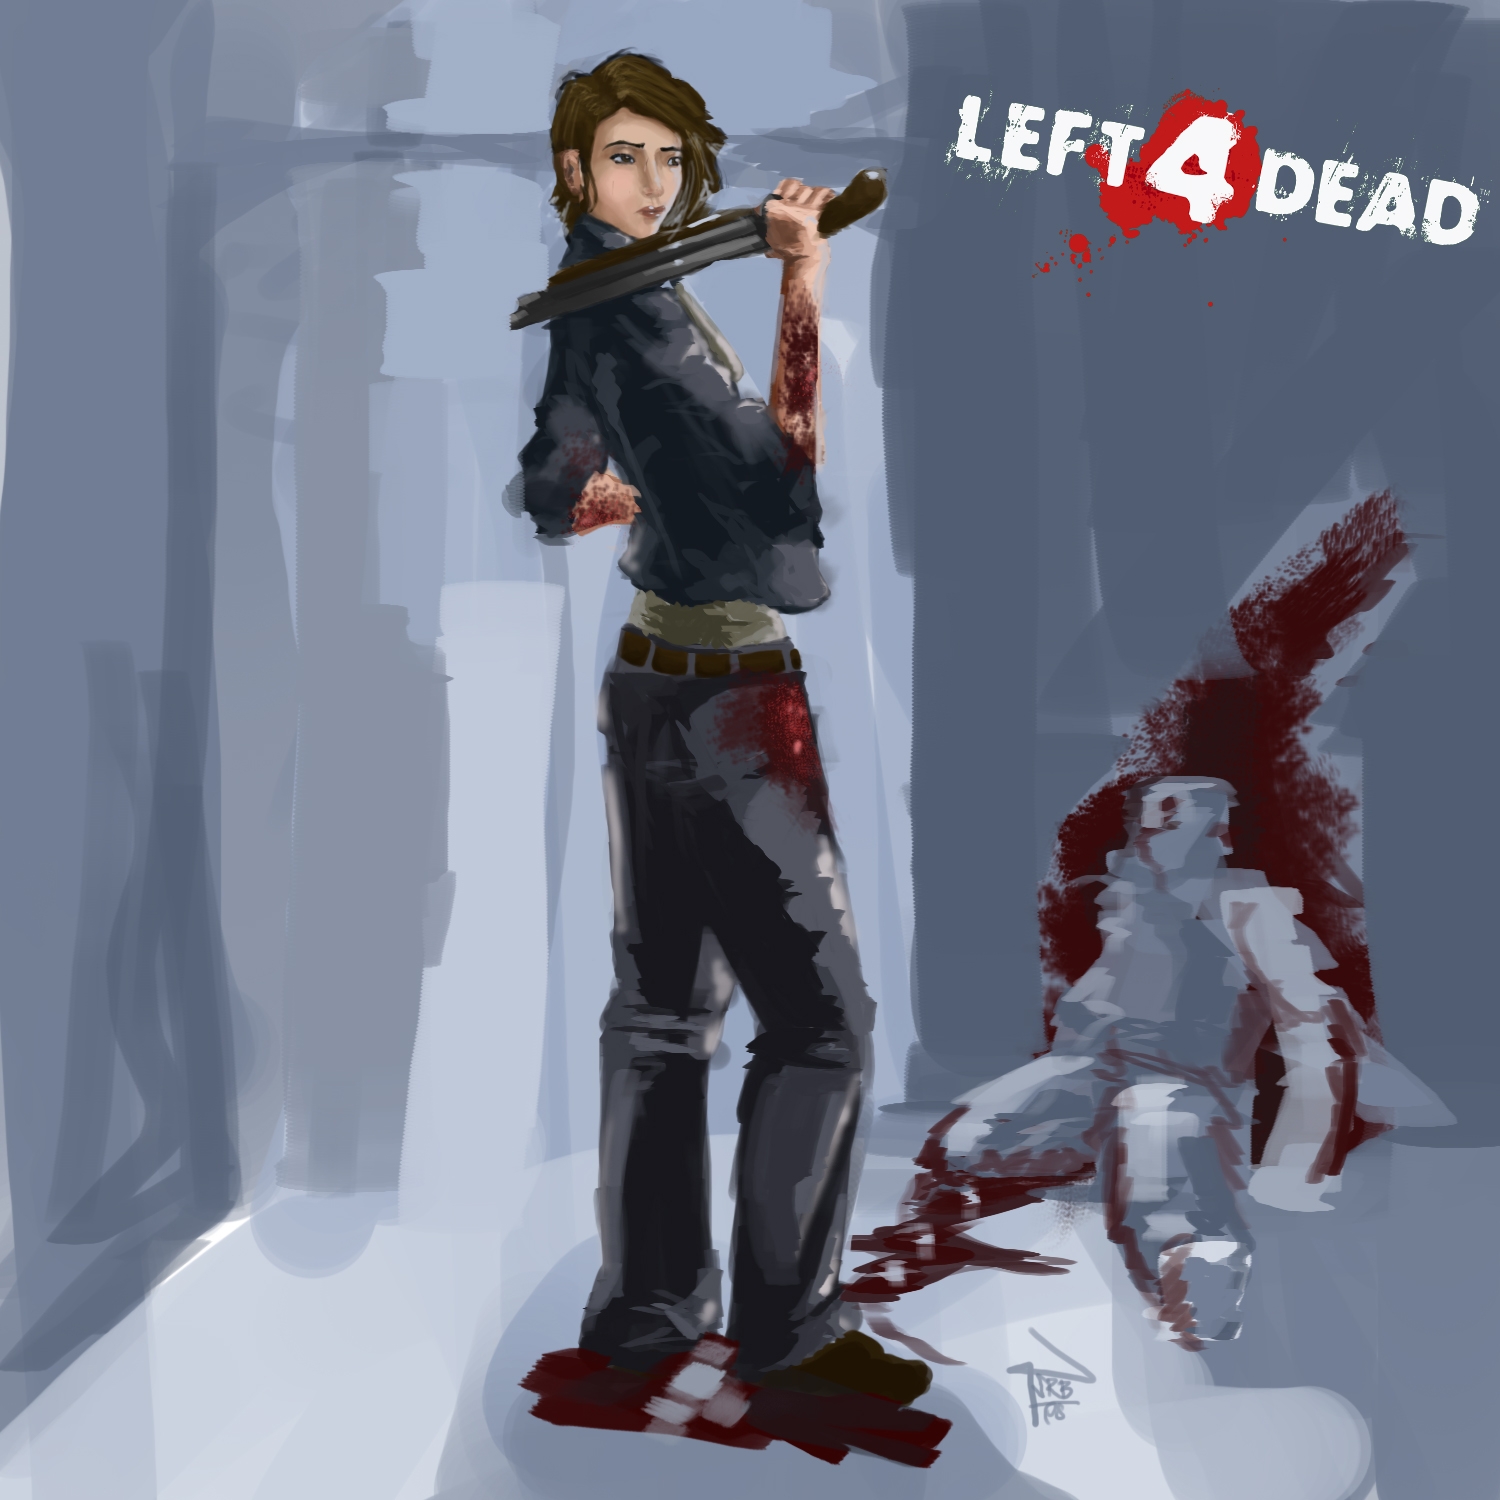 Are not Sexy pics of zoey l4d thought differently